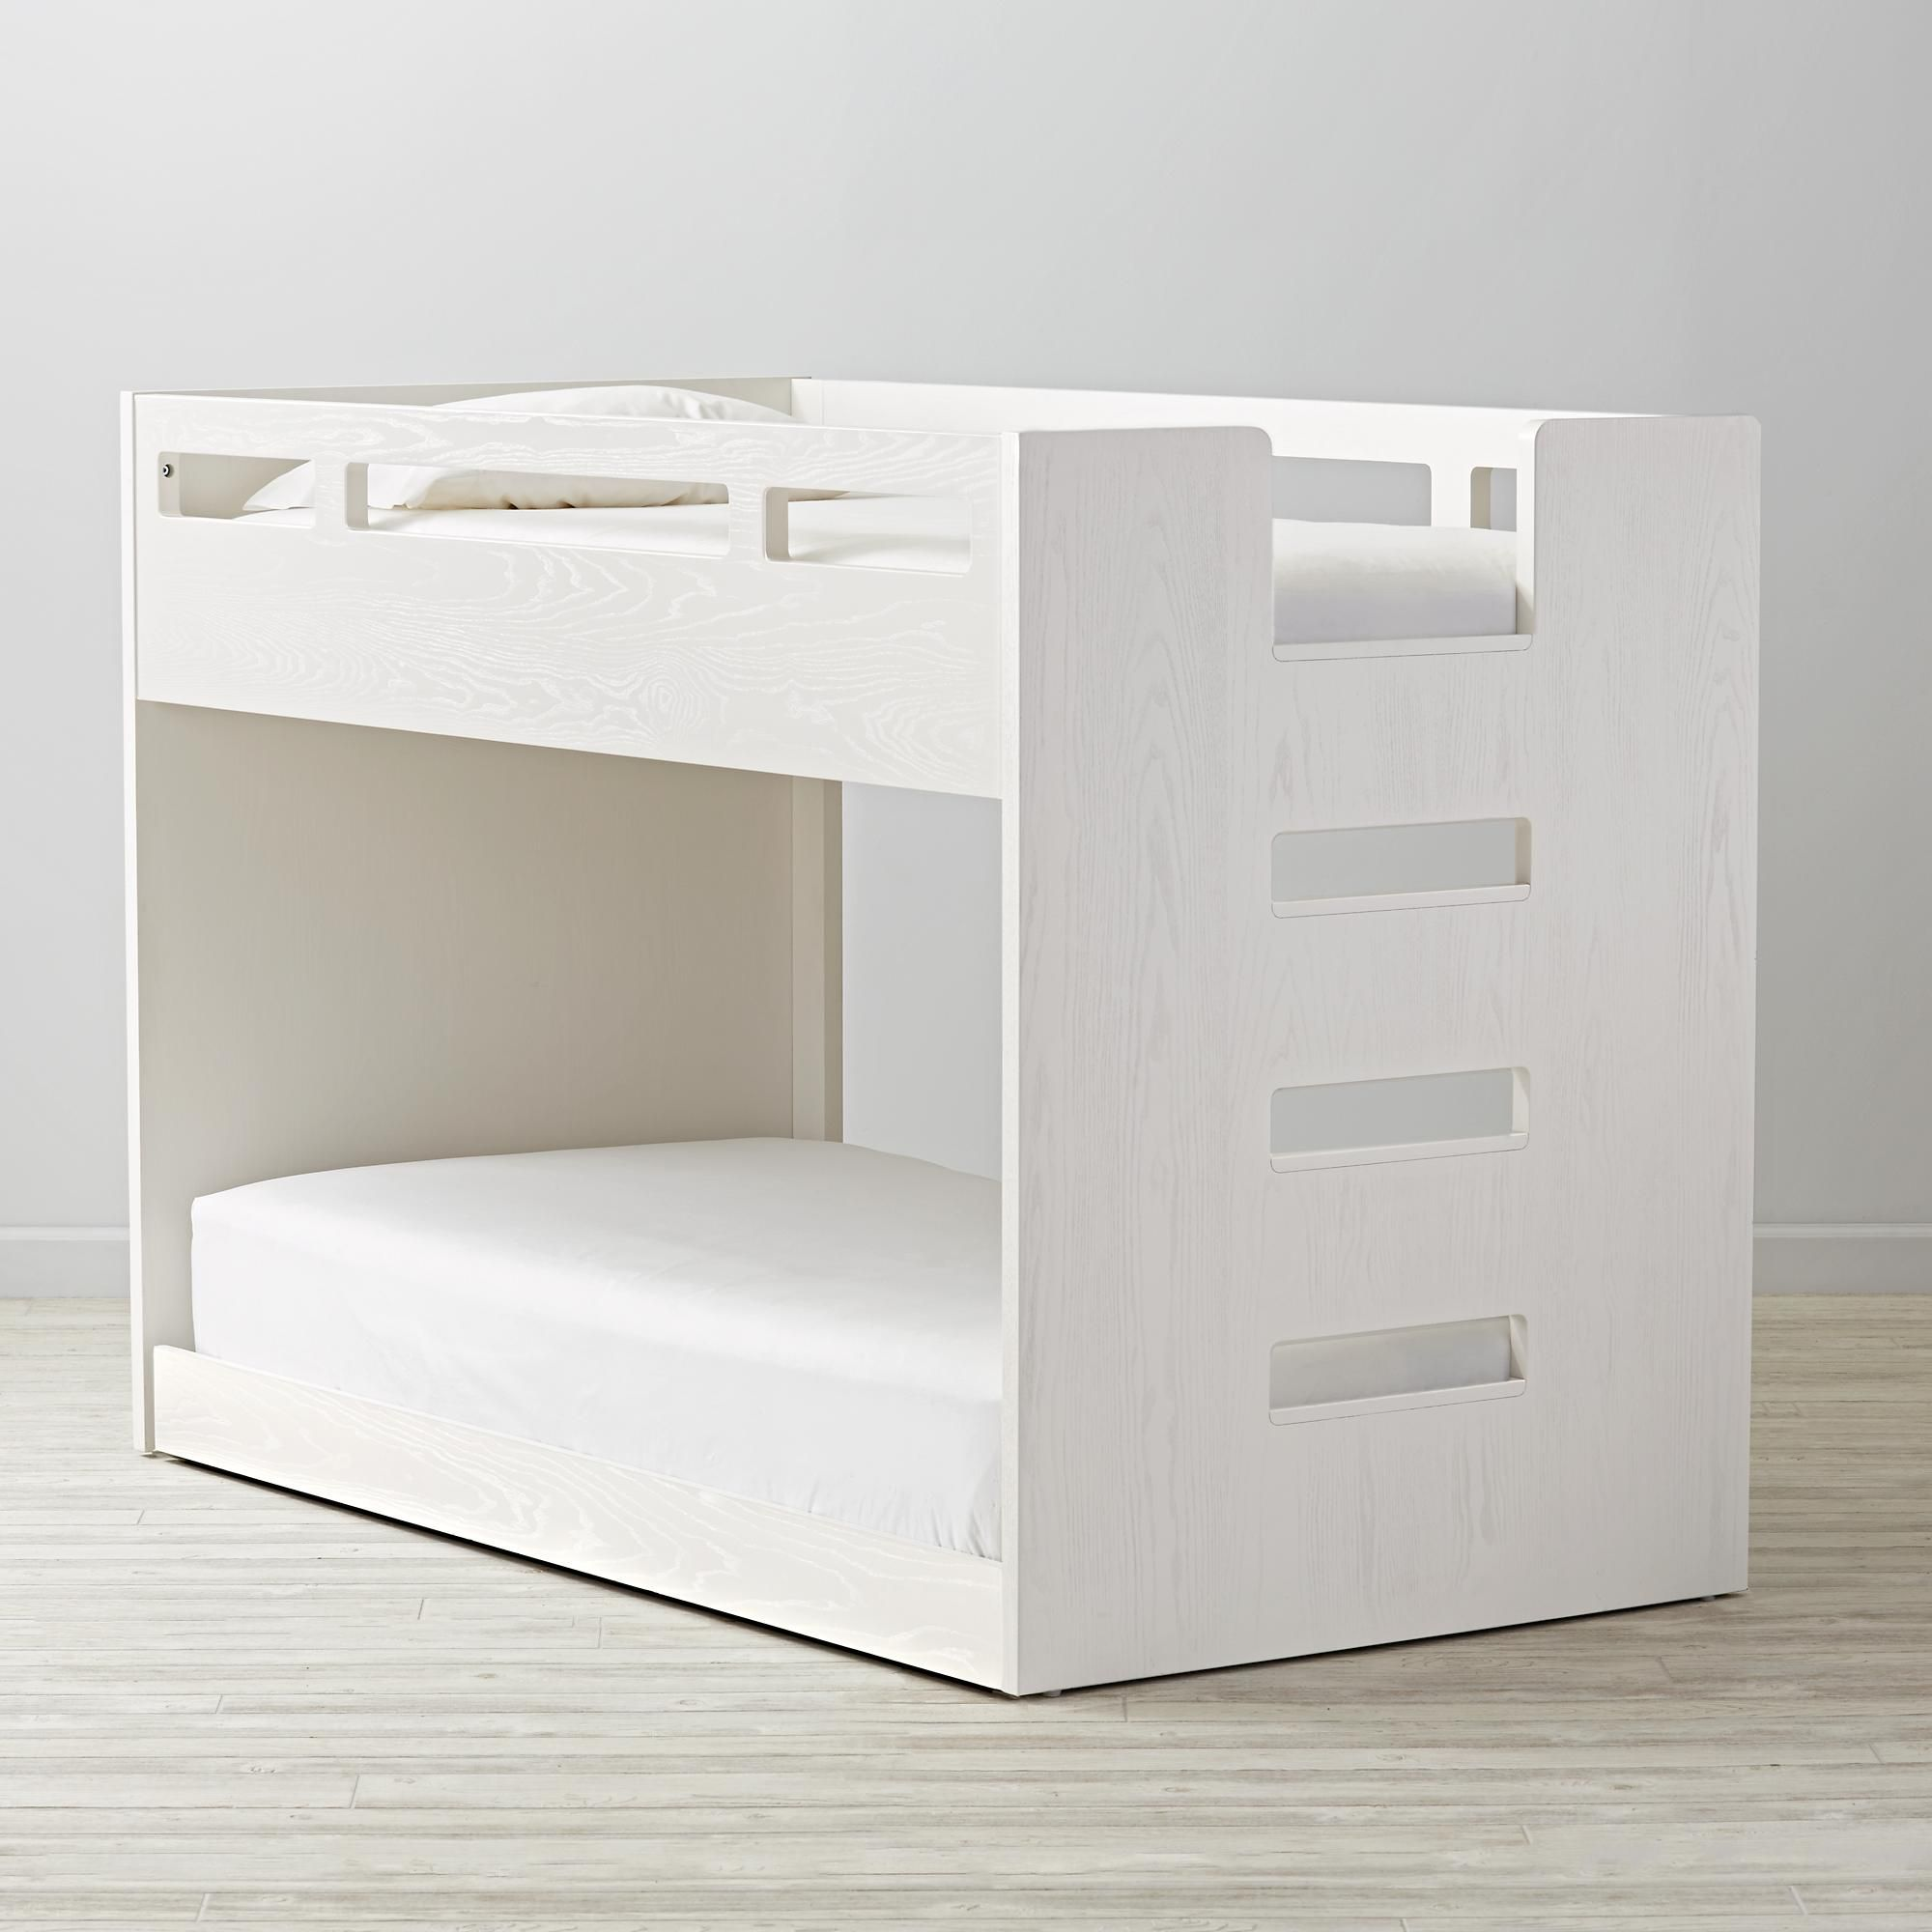 Low loft bed with desk and dresser  Abridged Bunk Bed  The Land of Nod  Bed for Giovanni  Pinterest